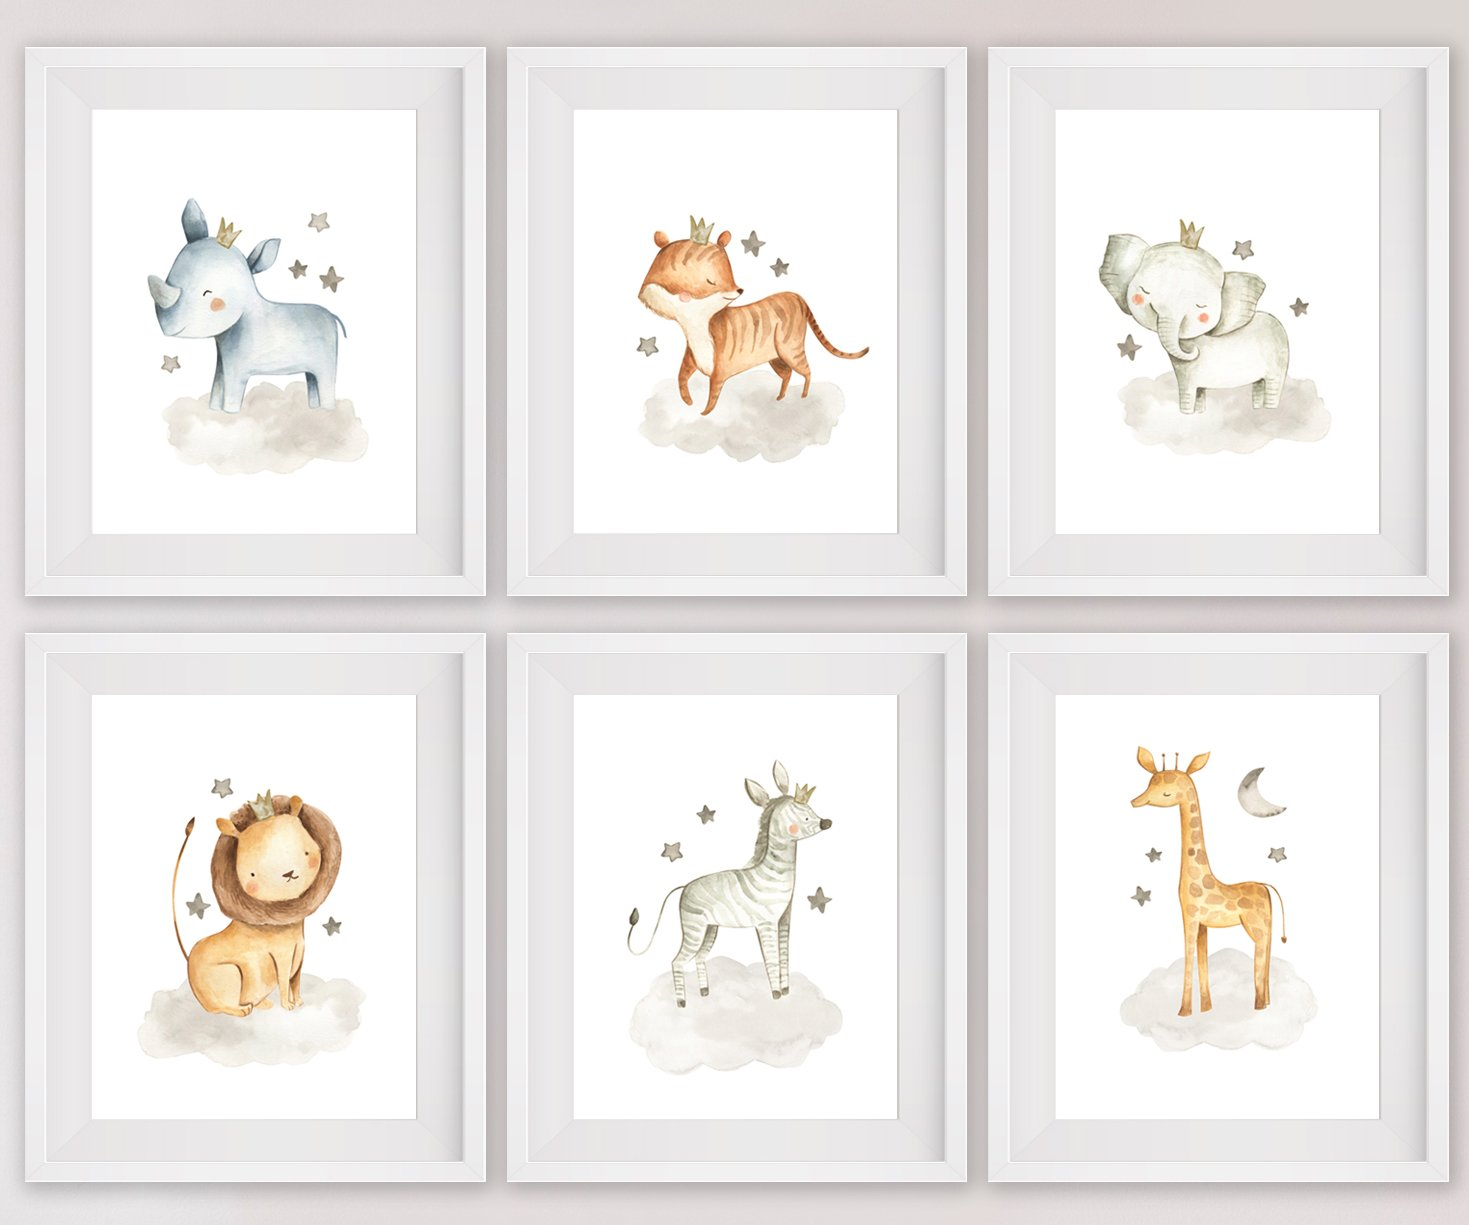 Stickerbrand Nursery Safari Animal Posters (set of 6) 8x10 Prints. Unframed. Great gifts for Baby shower, Kids Bedroom or Bathroom Decor. Baby Elephant, Giraffe, Hippo, Lion, Tiger and Zebra #P1005